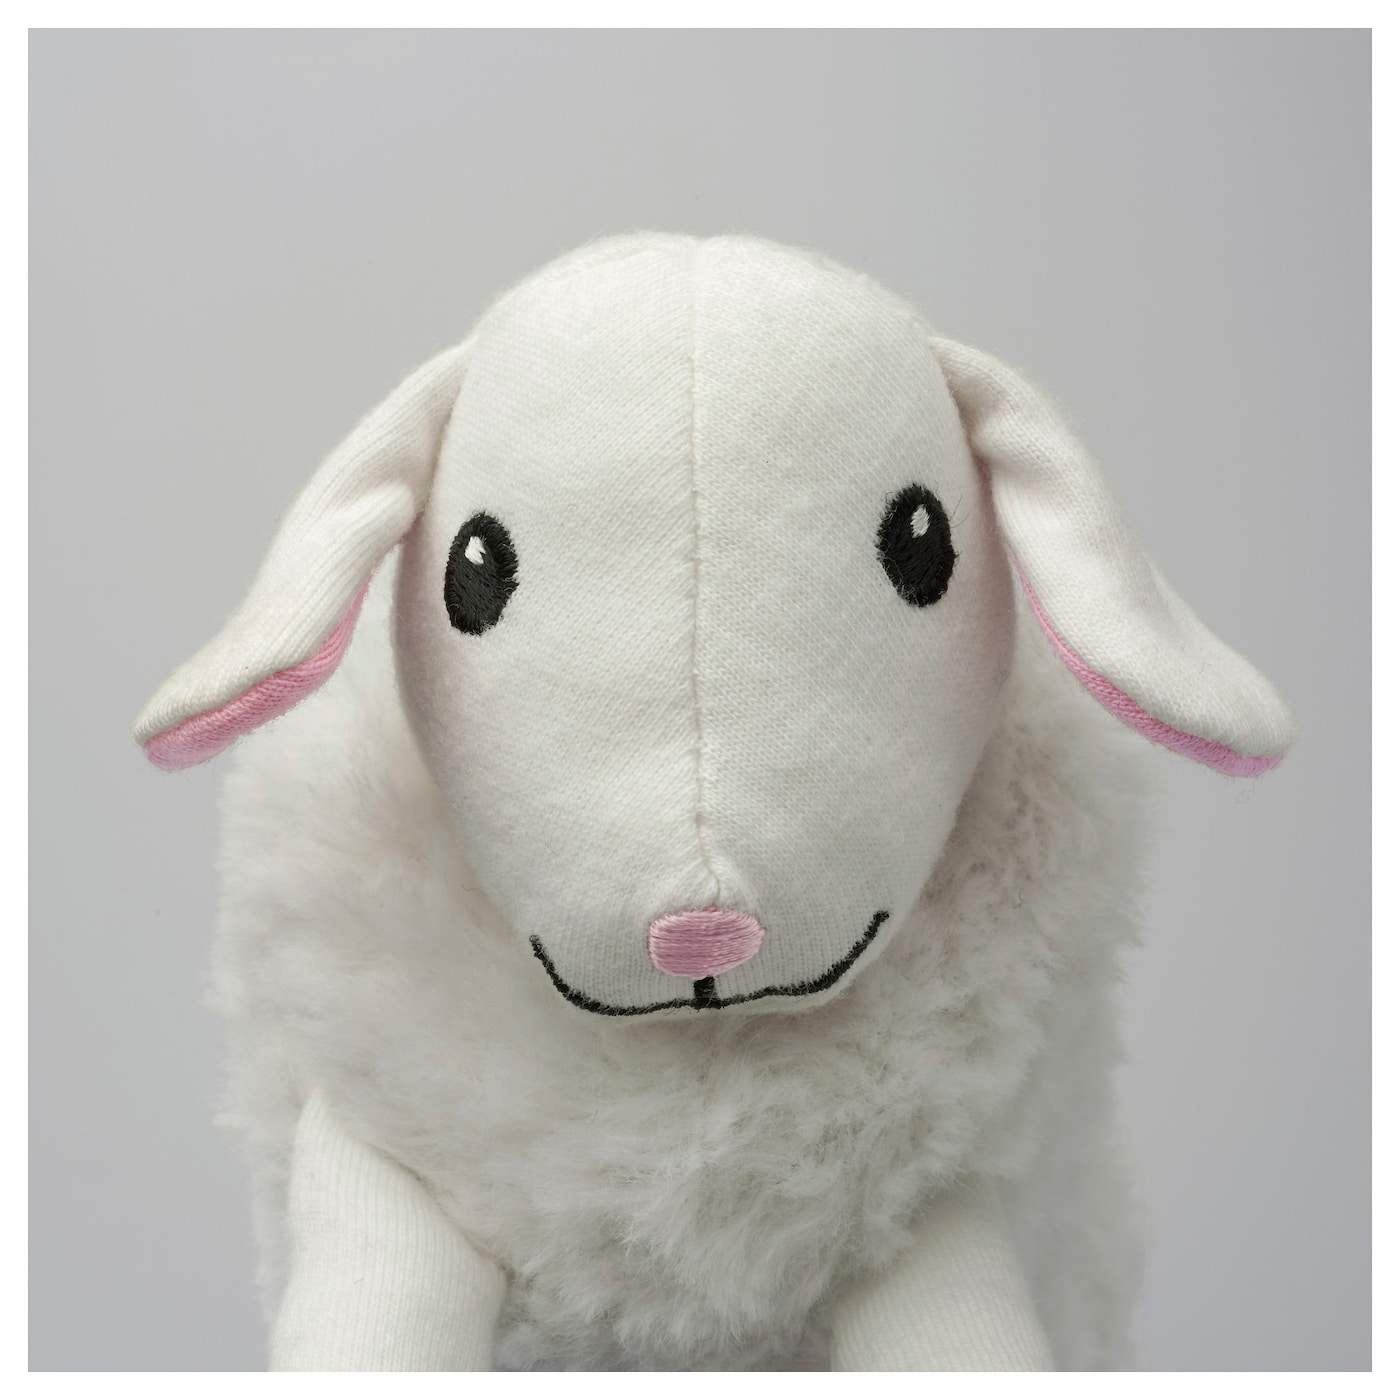 IKEA LEKA musical toy, sheep Stimulates the baby's sight, hearing and sense of touch.